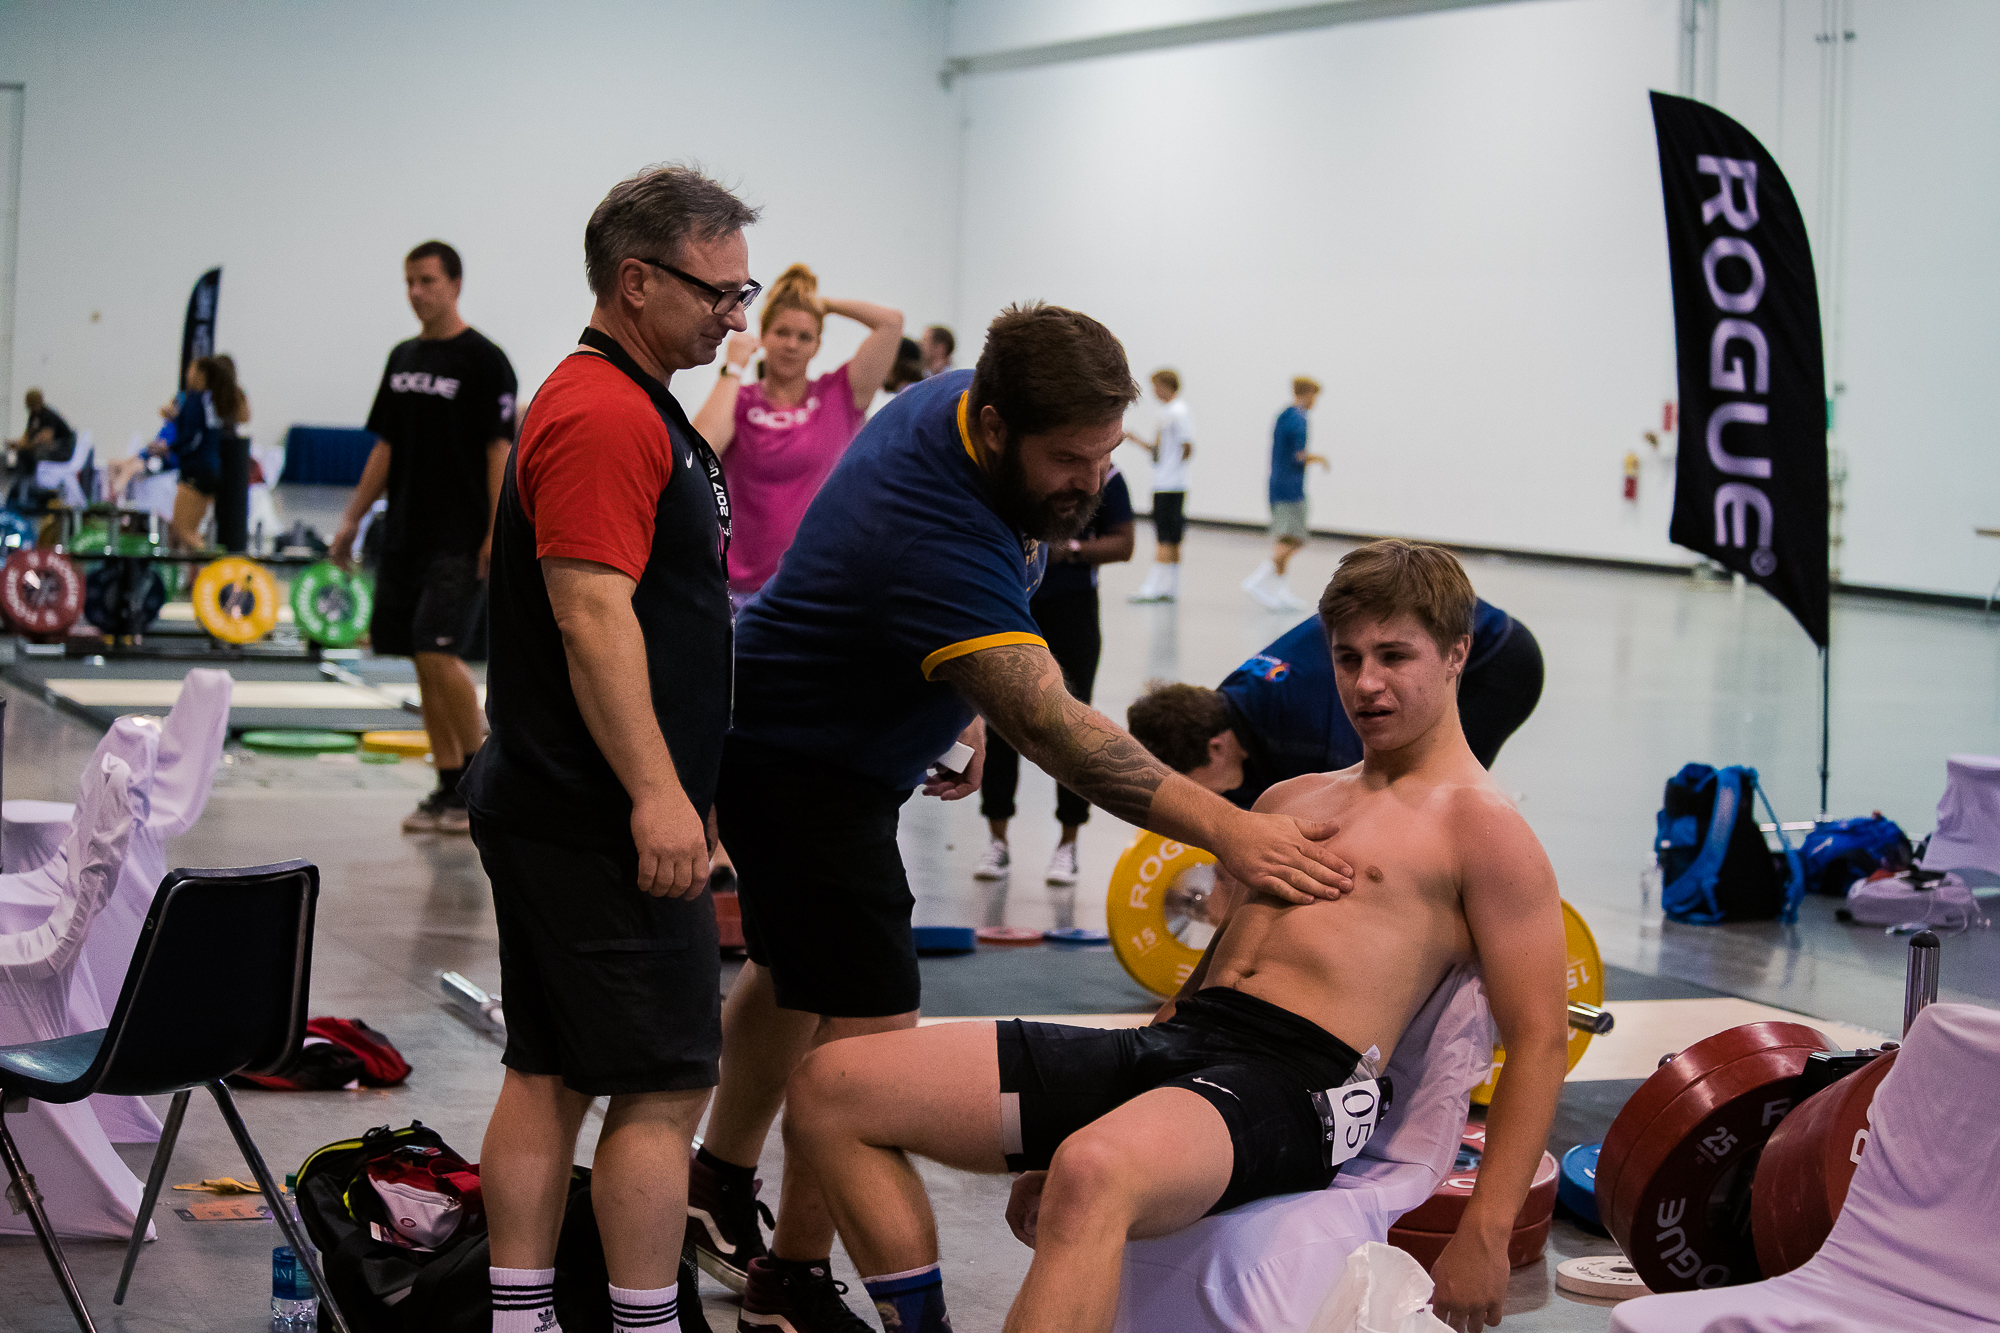 usaw-youth-nationals-weightlifting-photos-georgia-8.jpg